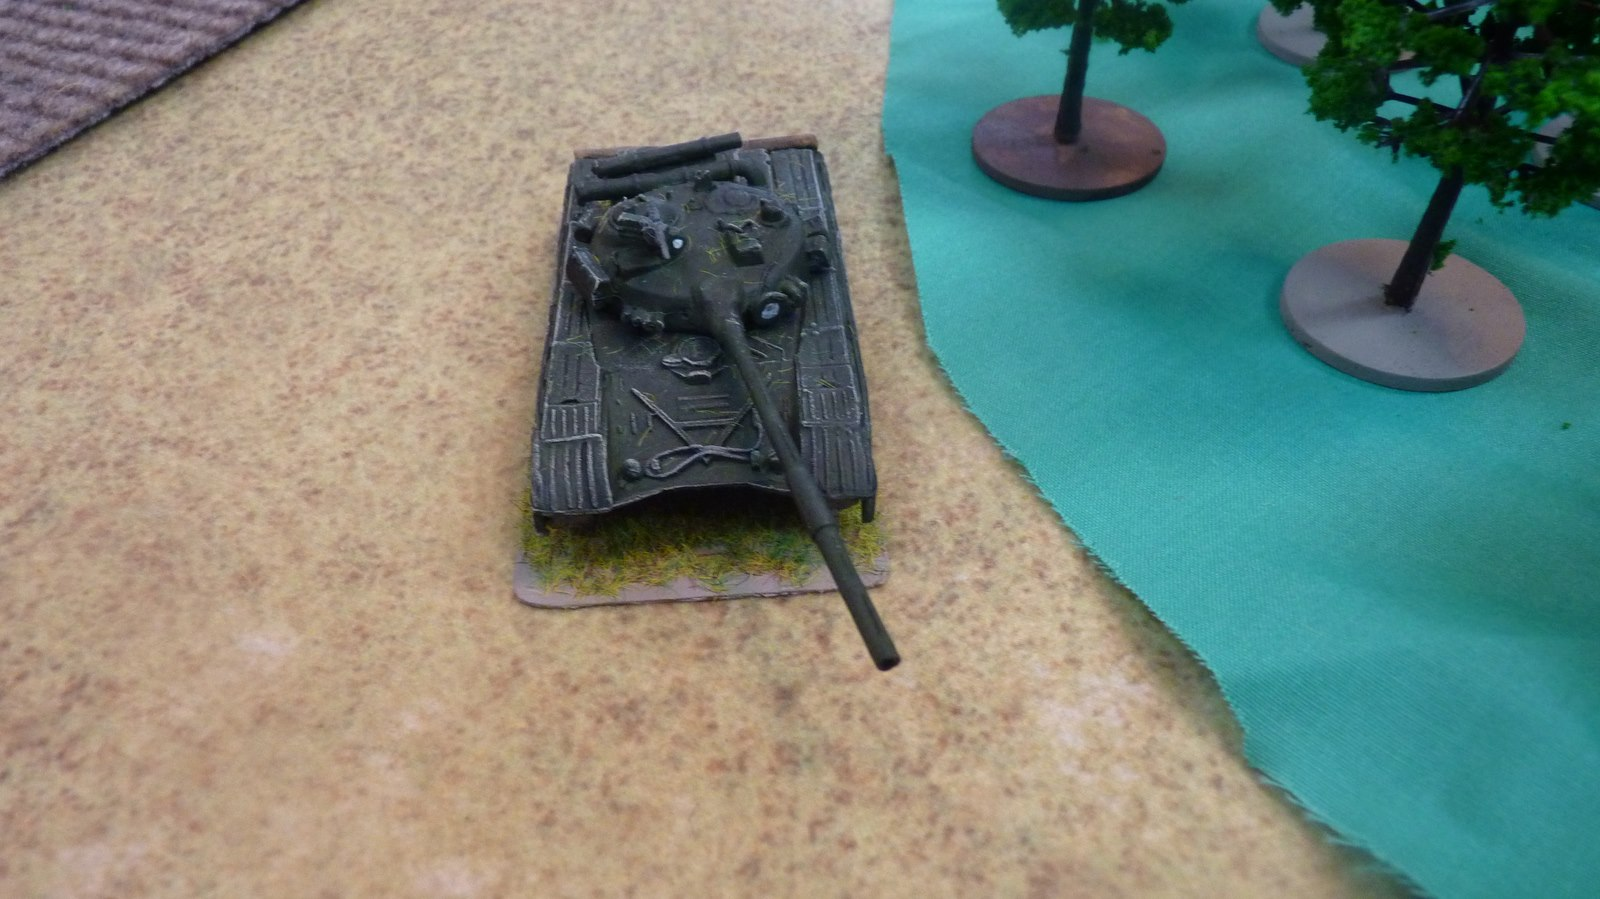 The Soviet company command tank advances